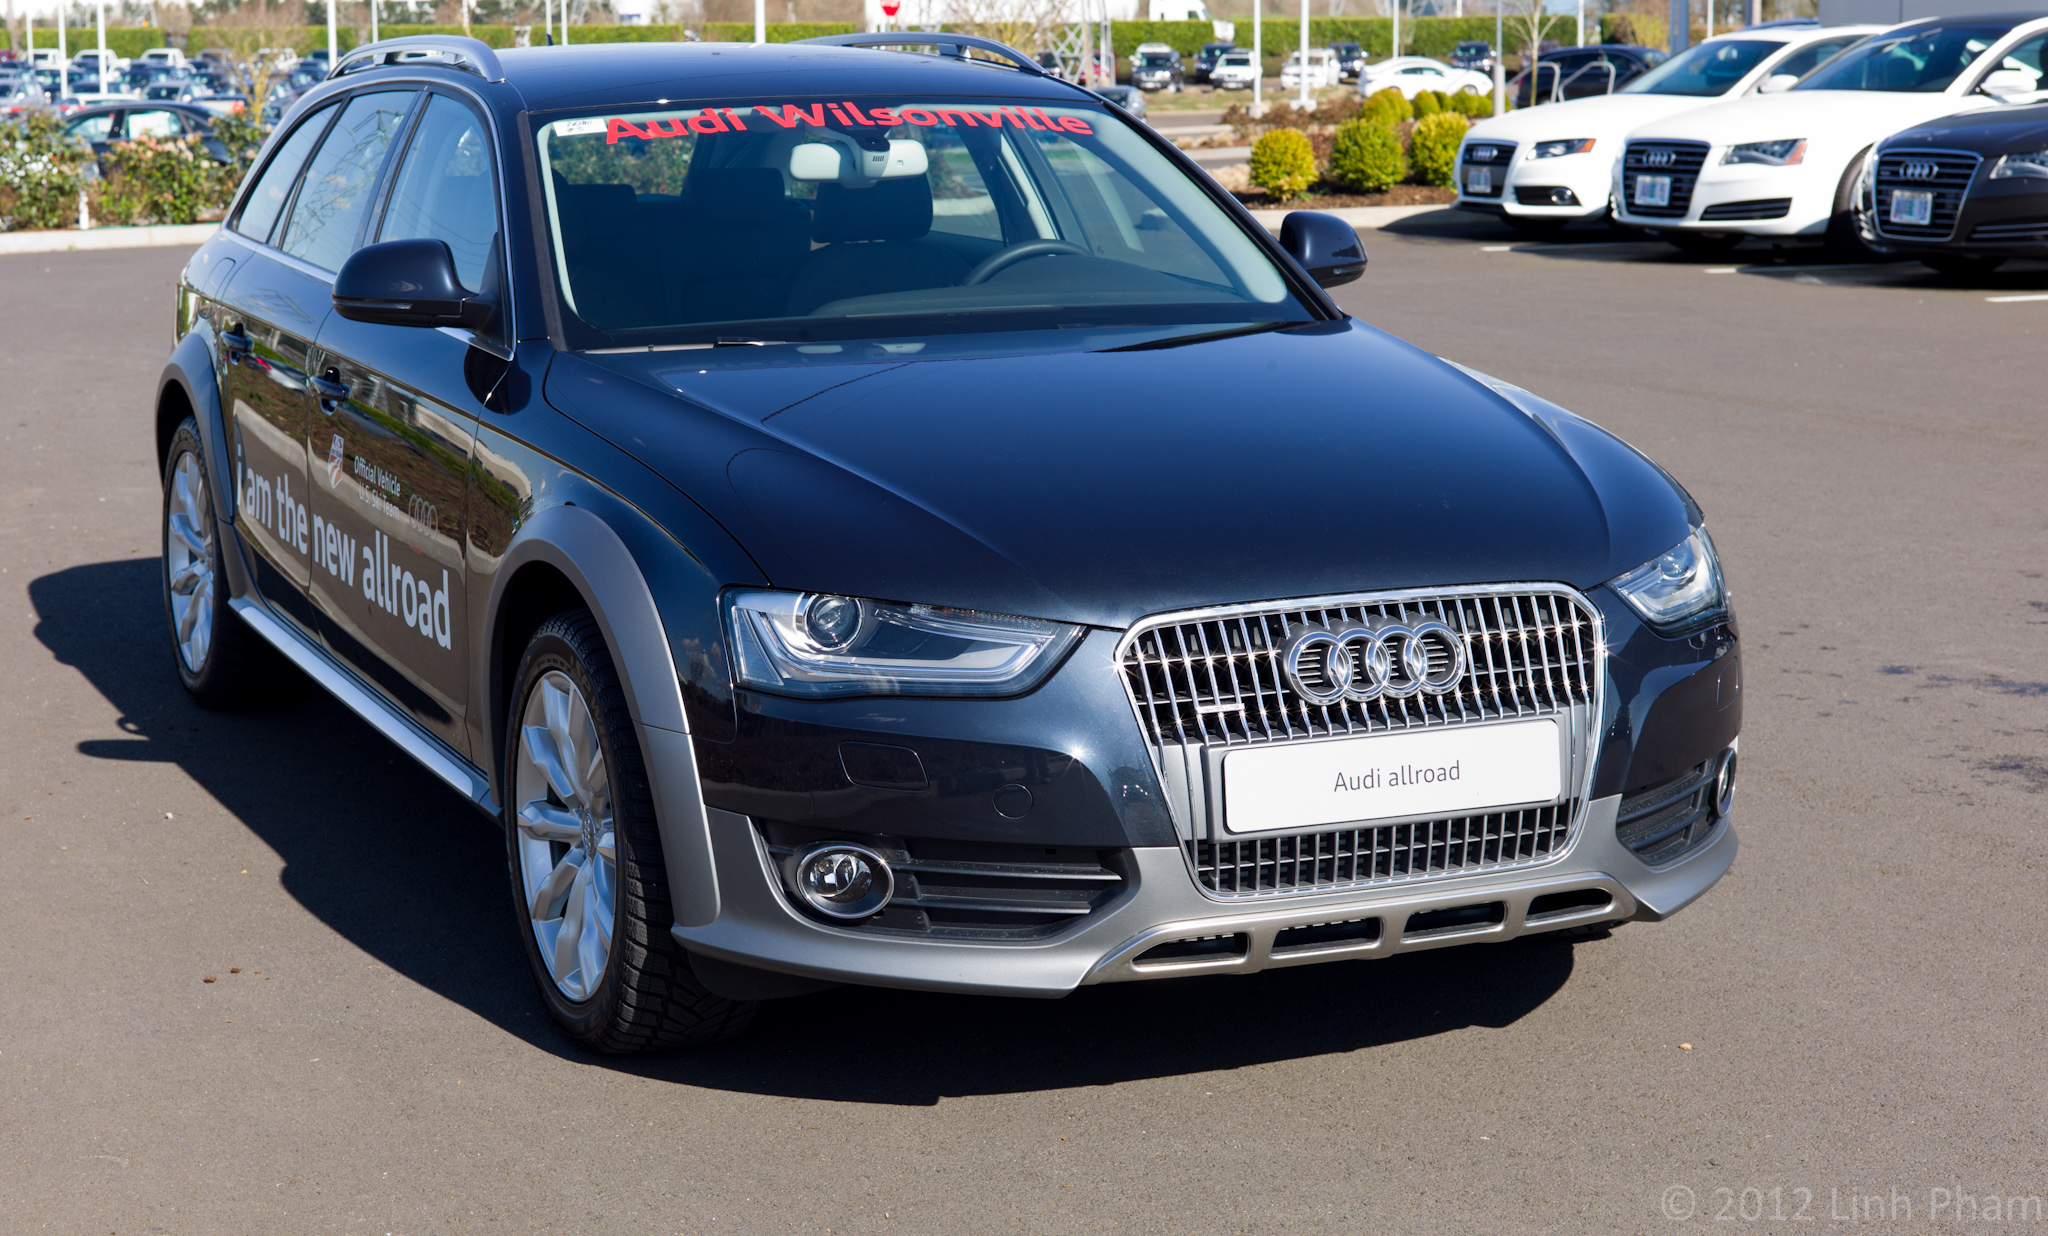 2014 audi a4 allroad b8 pictures information and specs auto. Black Bedroom Furniture Sets. Home Design Ideas